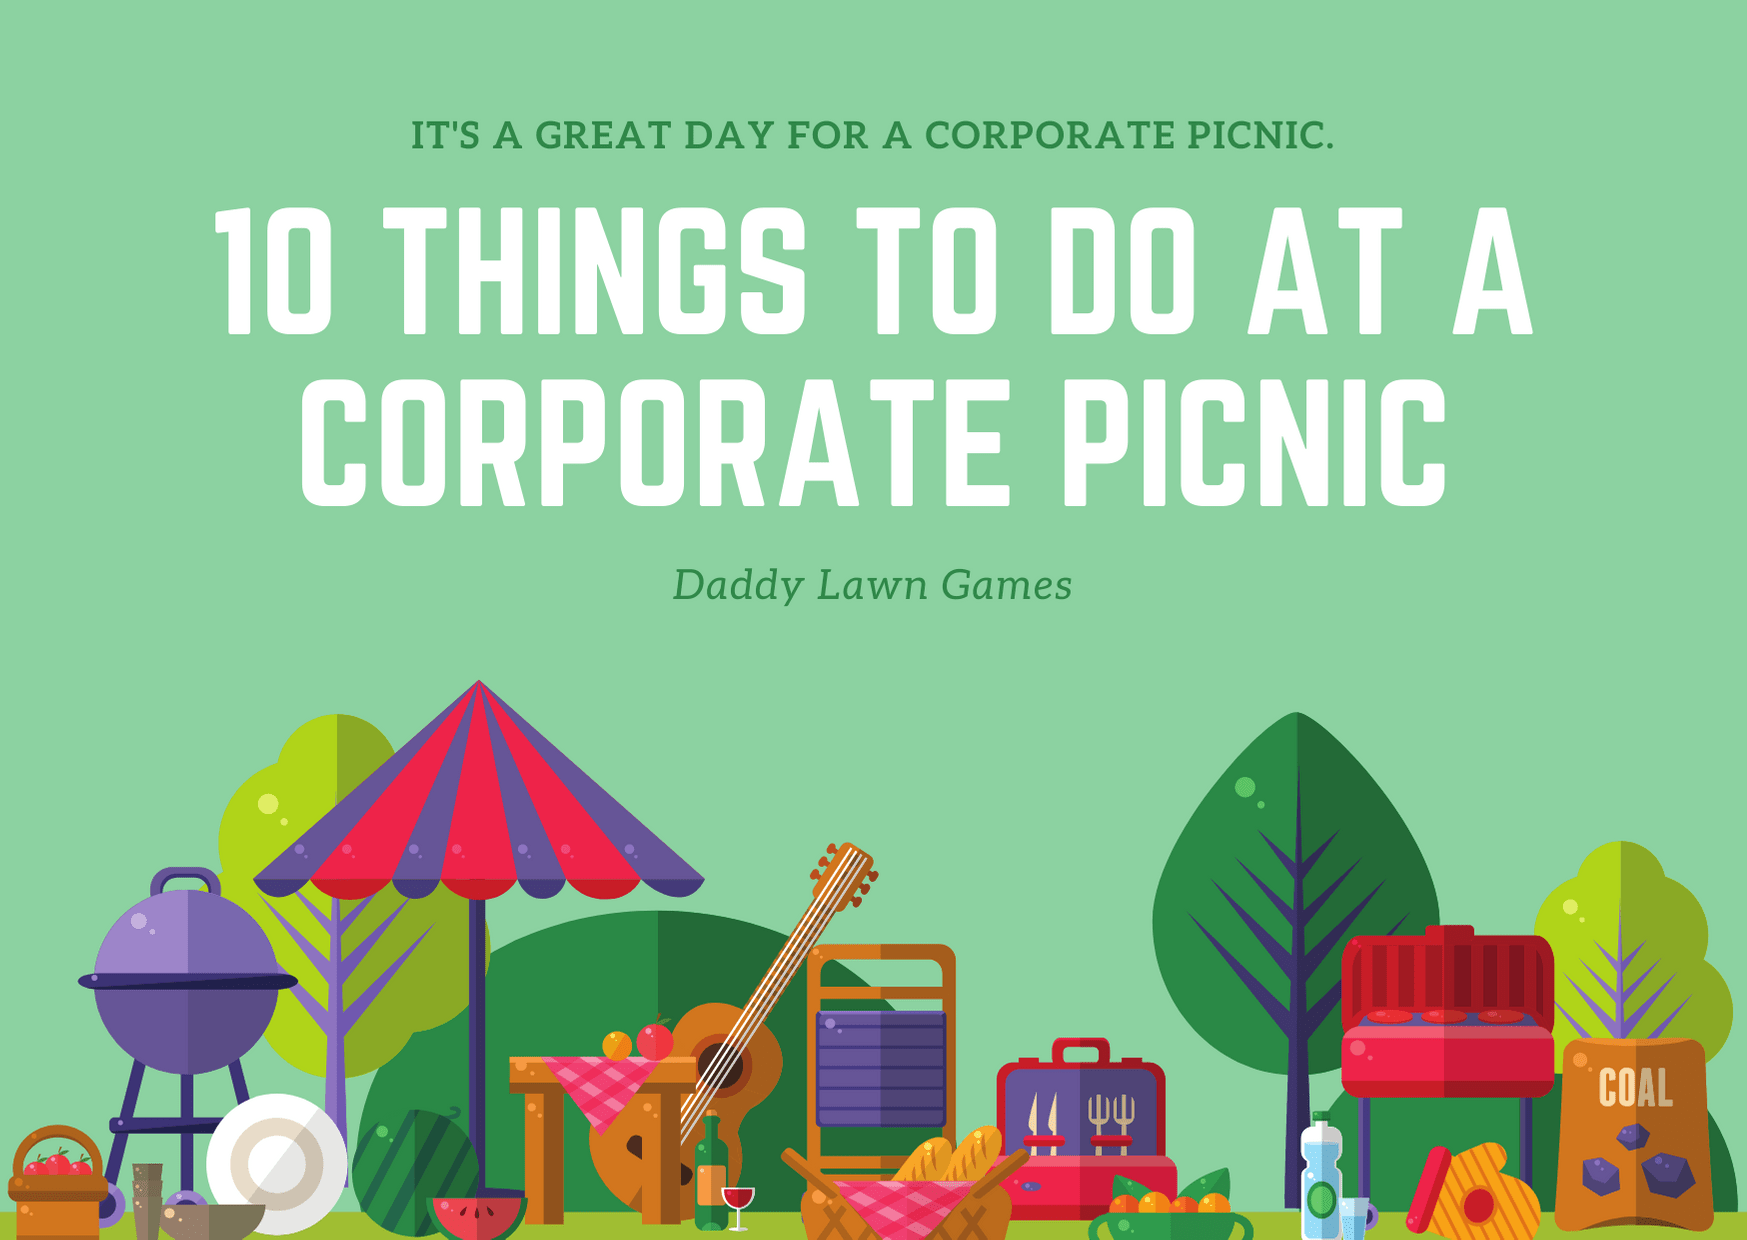 10 Things to Do at a Corporate Picnic